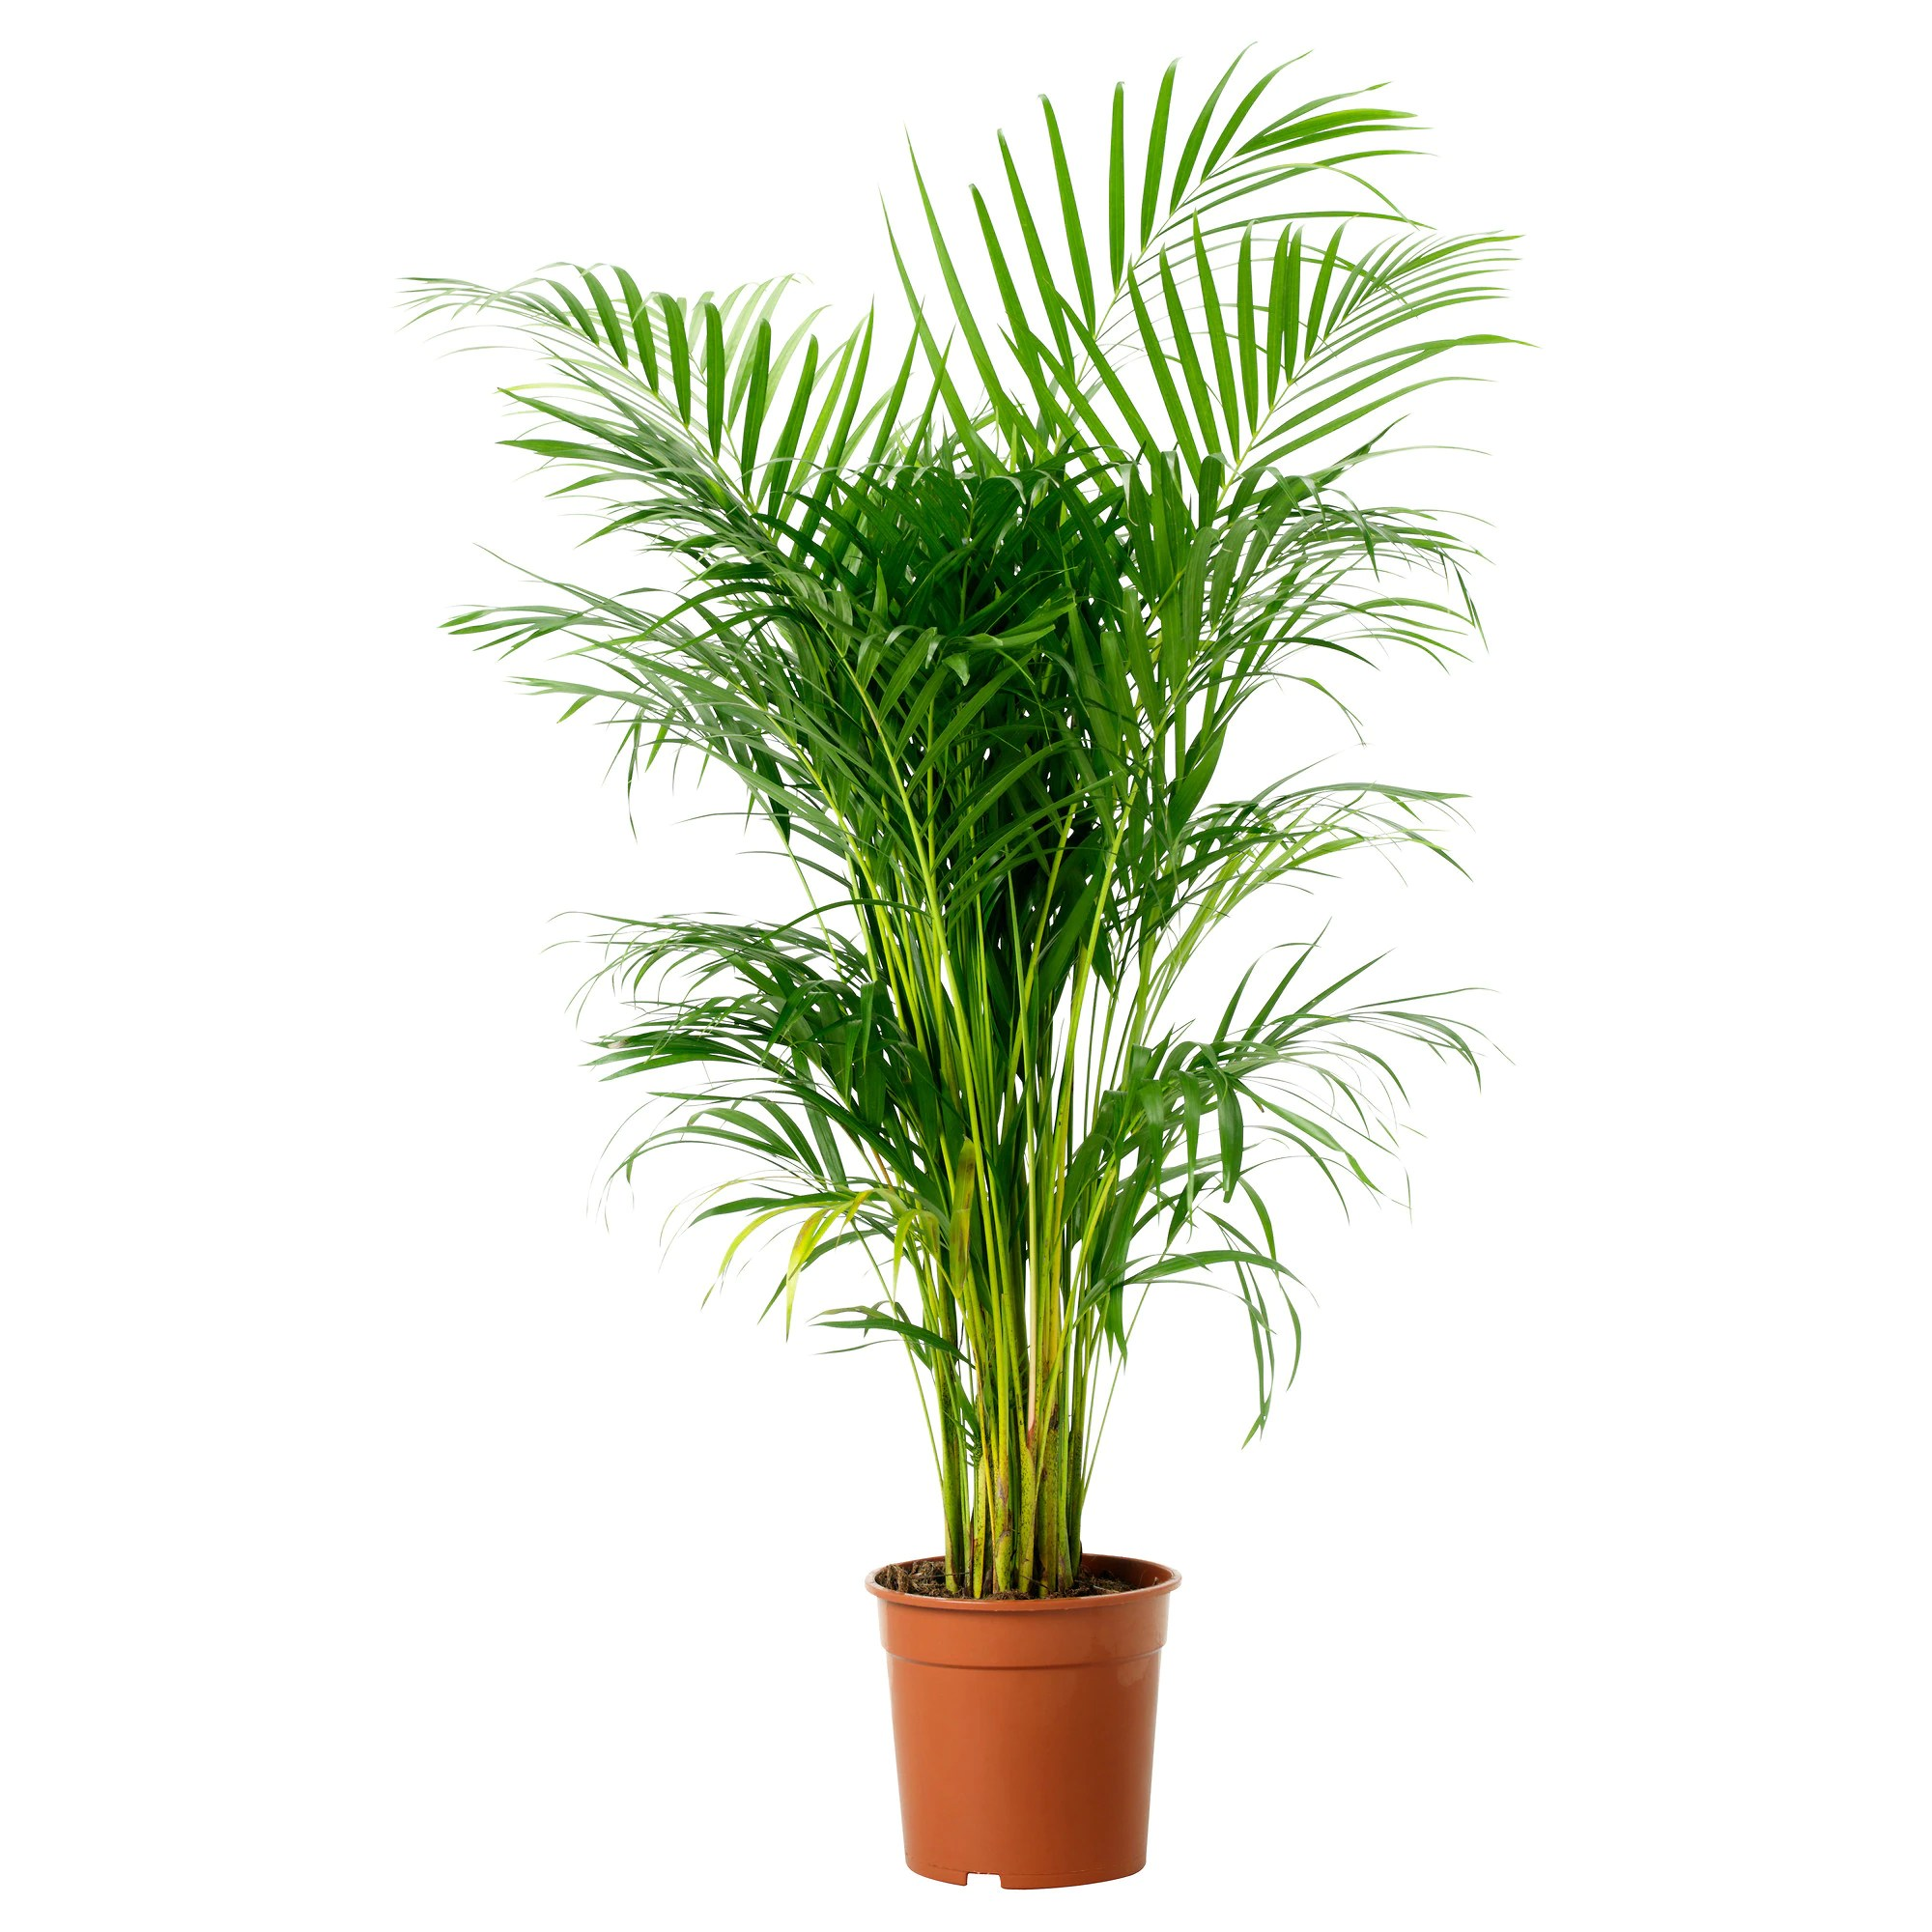 Ikea Palm Tree Chrysalidocarpus Lutescens Potted Plant Areca Palm